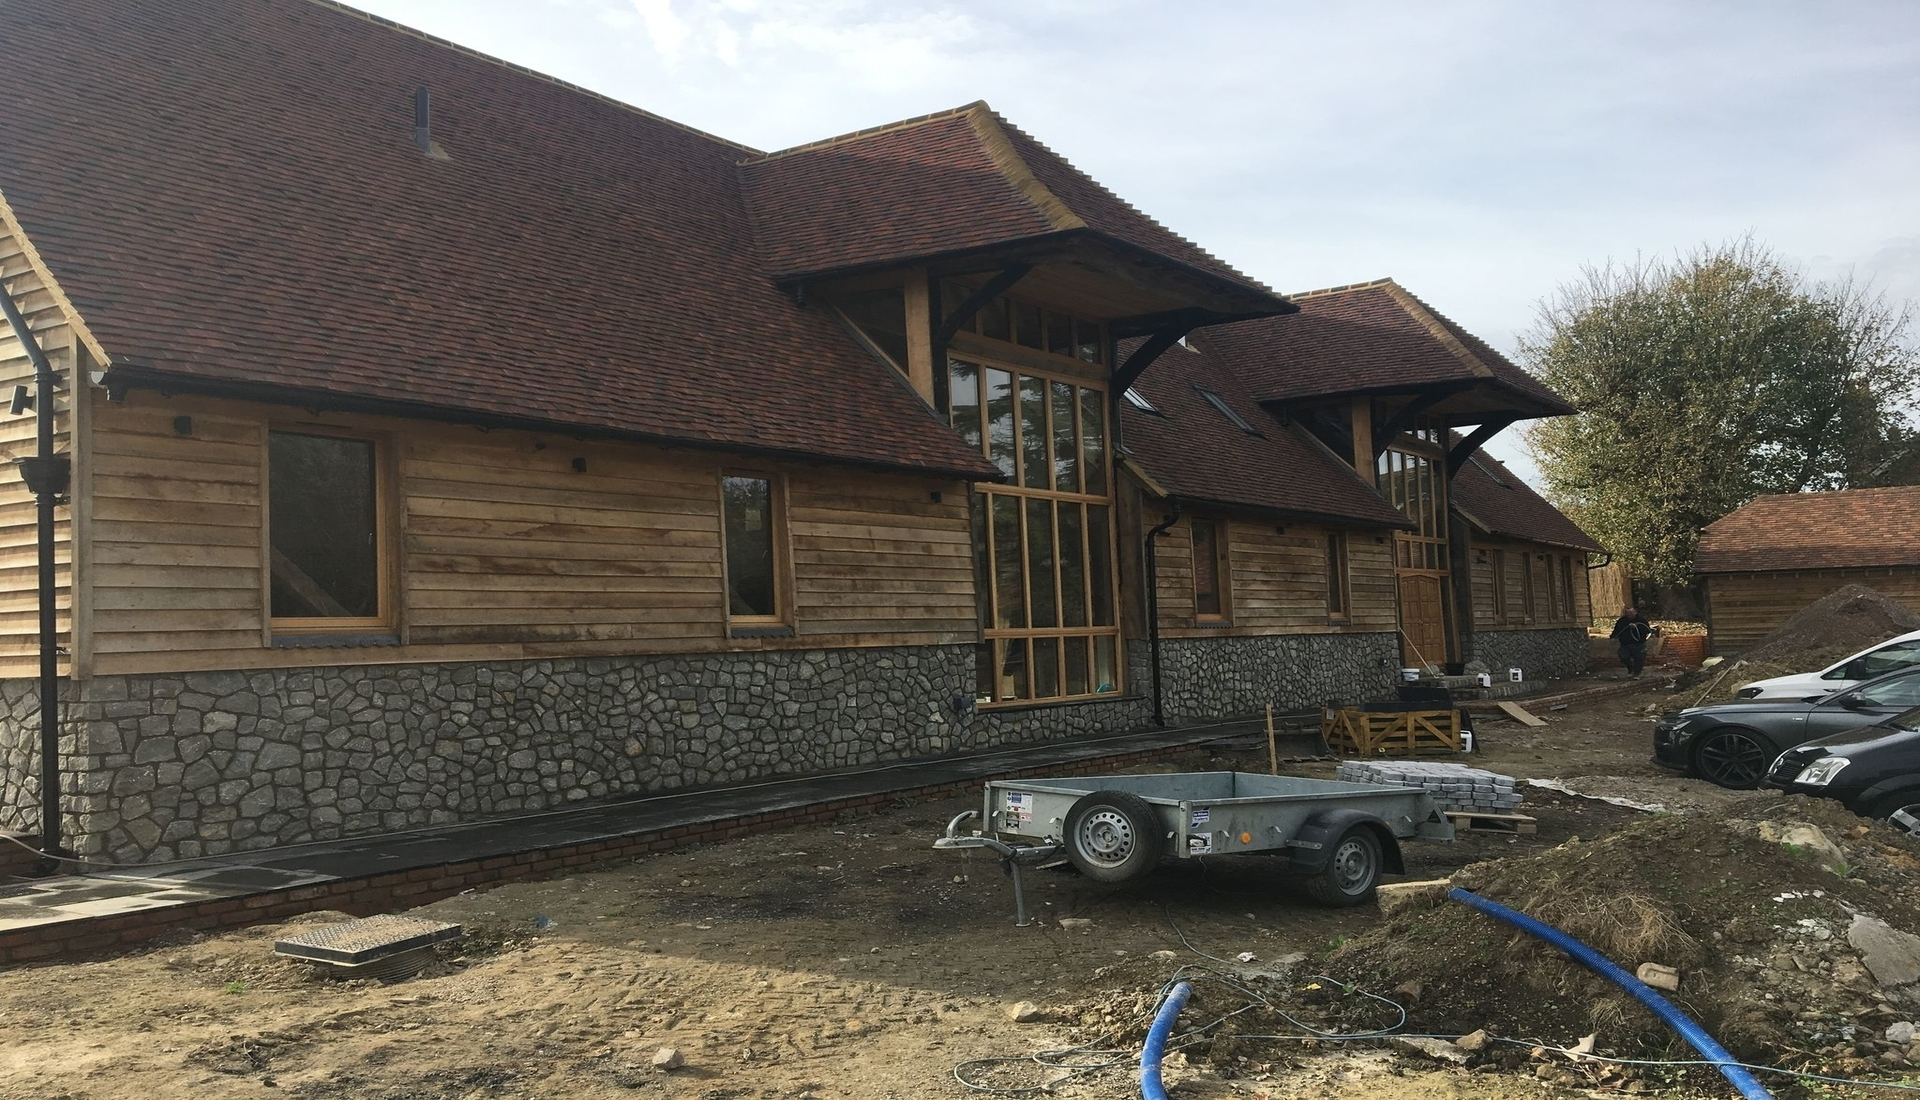 Featured Barn Conversion by Malling Masonry - Barn Conversion Specialists in Kent